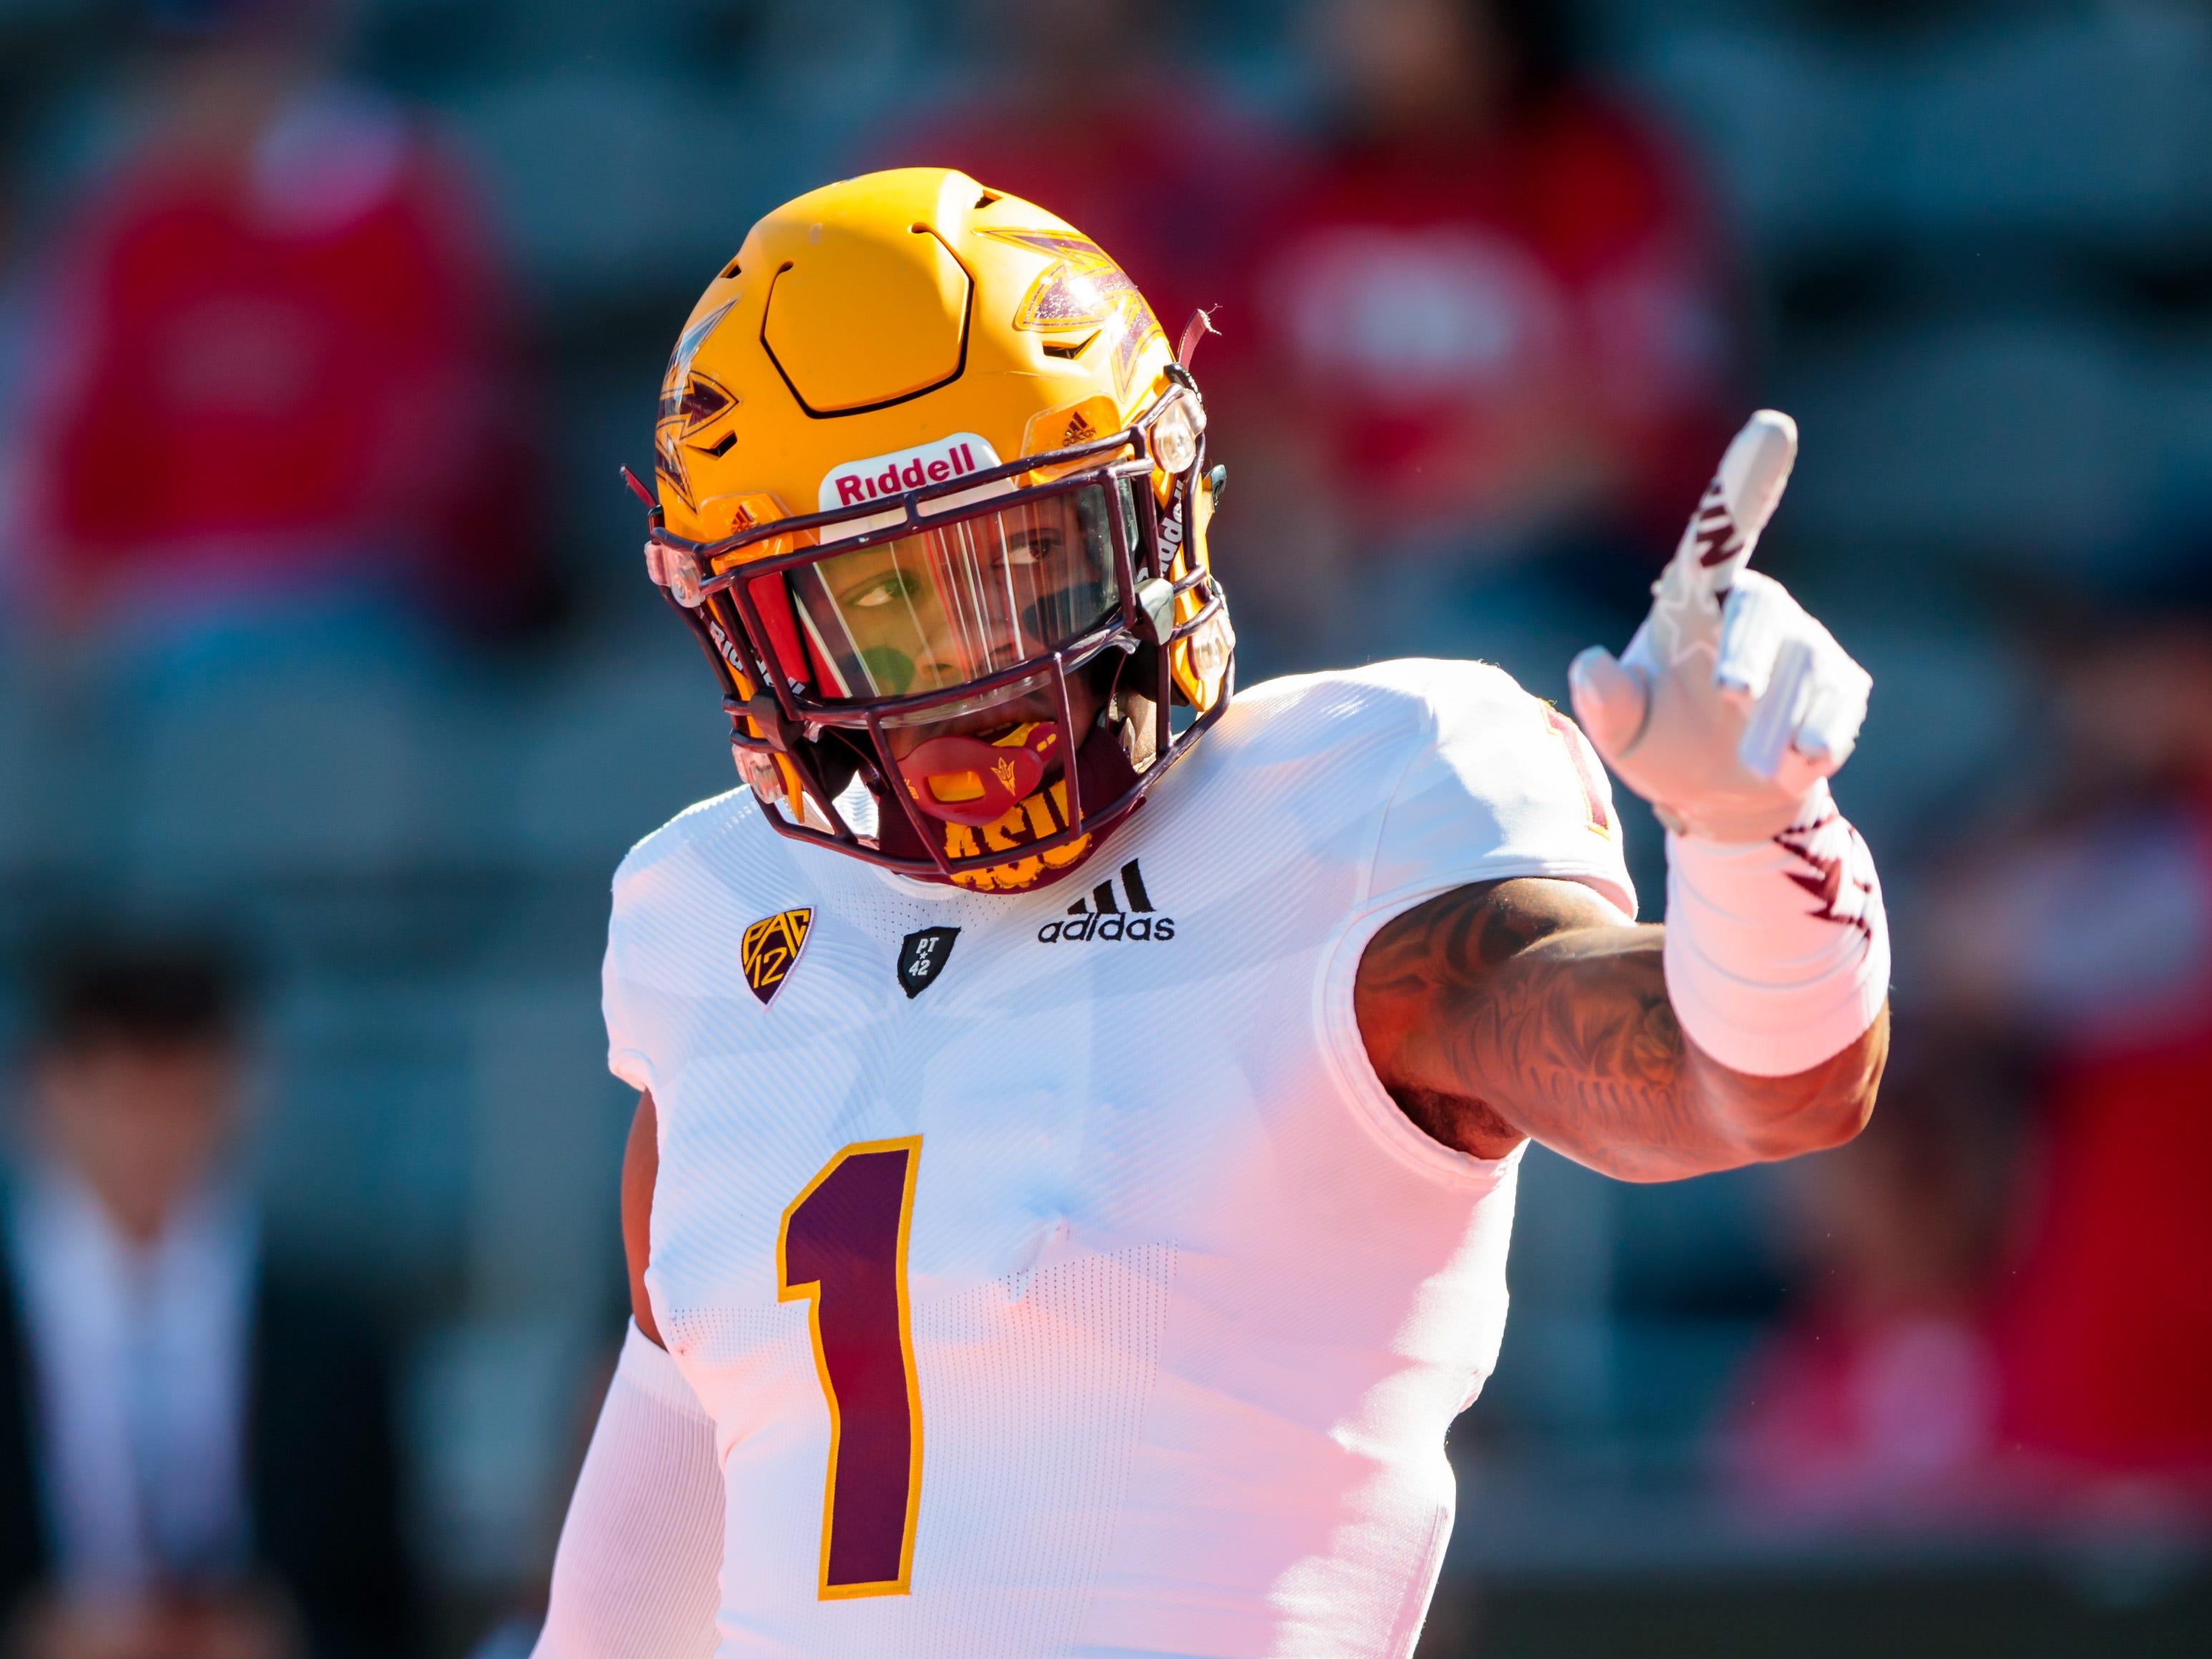 Nov 24, 2018; Tucson, AZ, USA; Arizona State Sun Devils wide receiver N'Keal Harry (1) prior to the game against the Arizona Wildcats during the Territorial Cup at Arizona Stadium. Mandatory Credit: Mark J. Rebilas-USA TODAY Sports